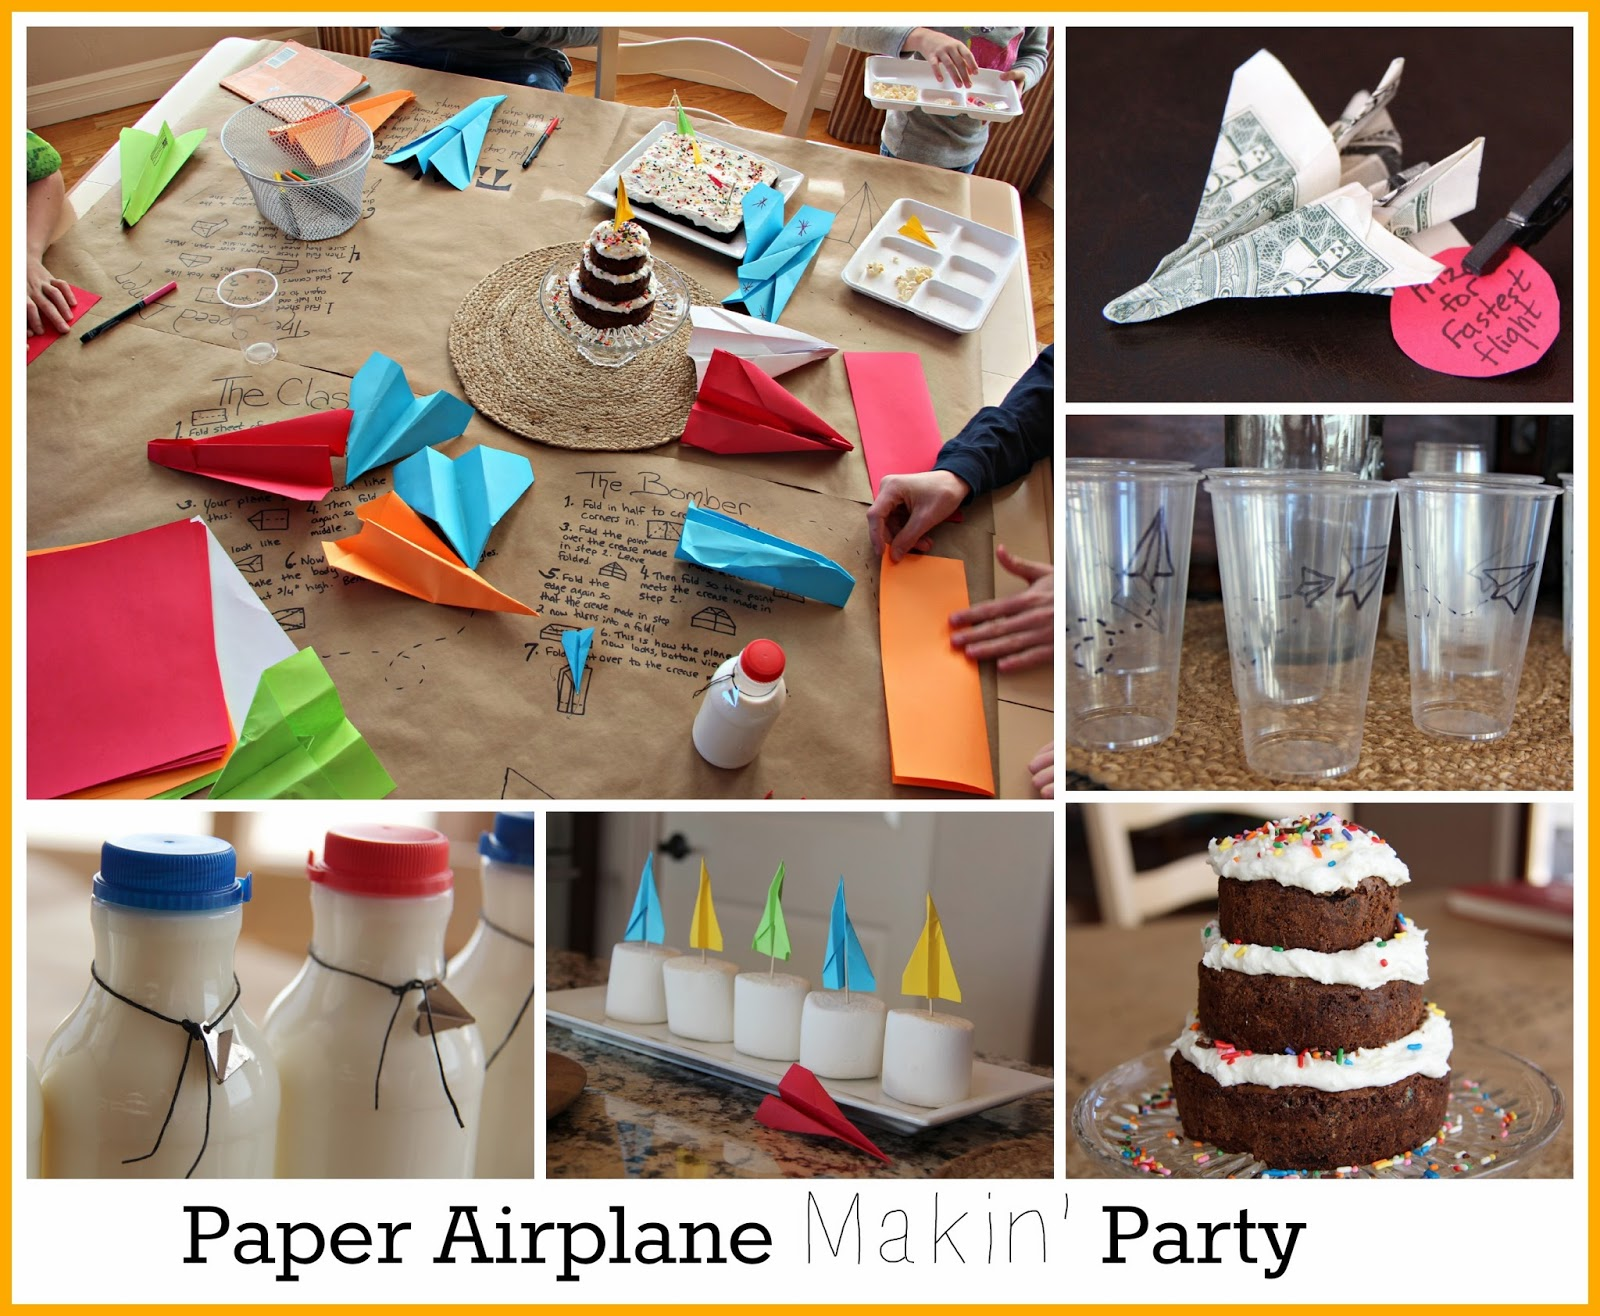 Moore Minutes: Paper Airplane MAKING Themed 10th Birthday Party!